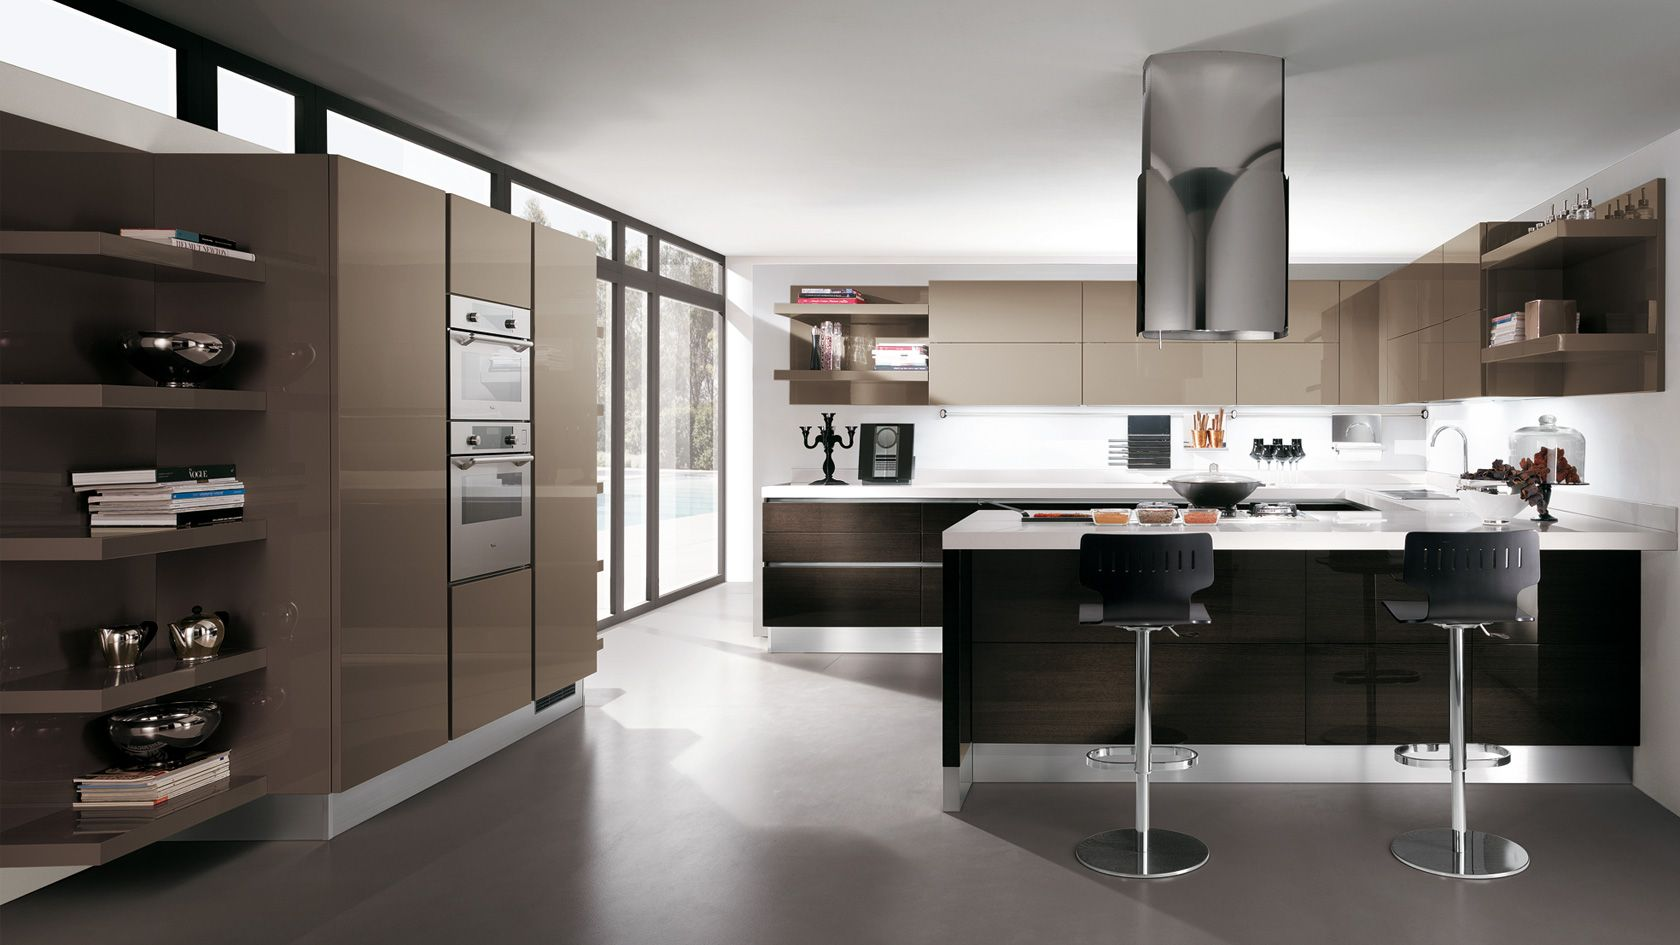 scavolini mood kitchen light scavolini contemporary kitchen. Cucina Contemporanea Scenery | Sito Ufficiale Scavolini Mood Kitchen Light Contemporary C